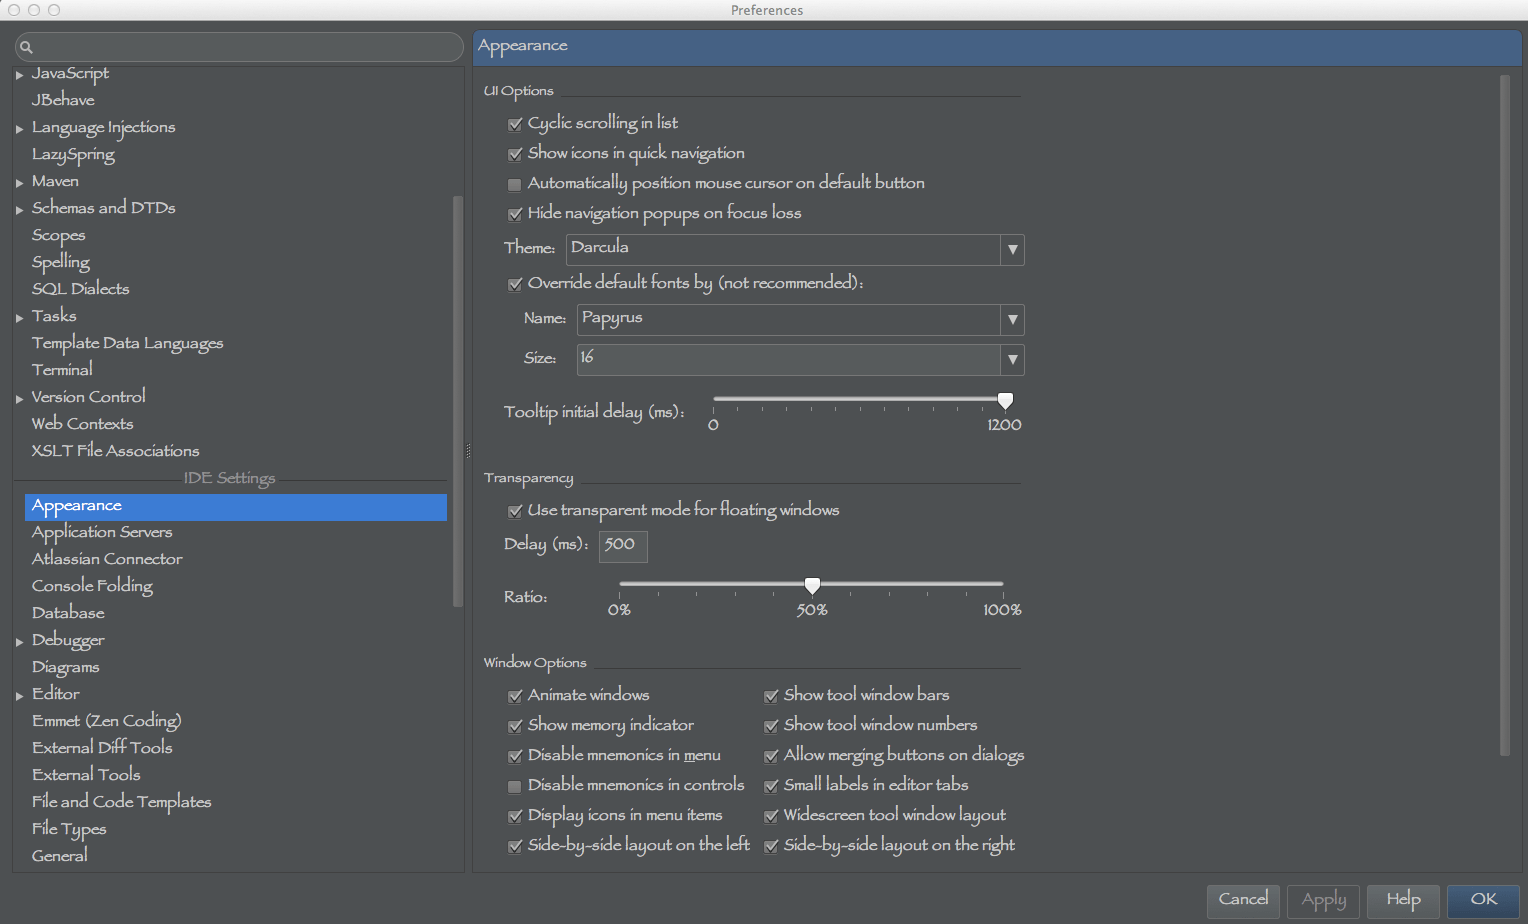 How To Change Font Size Of Data Views Tab Window In